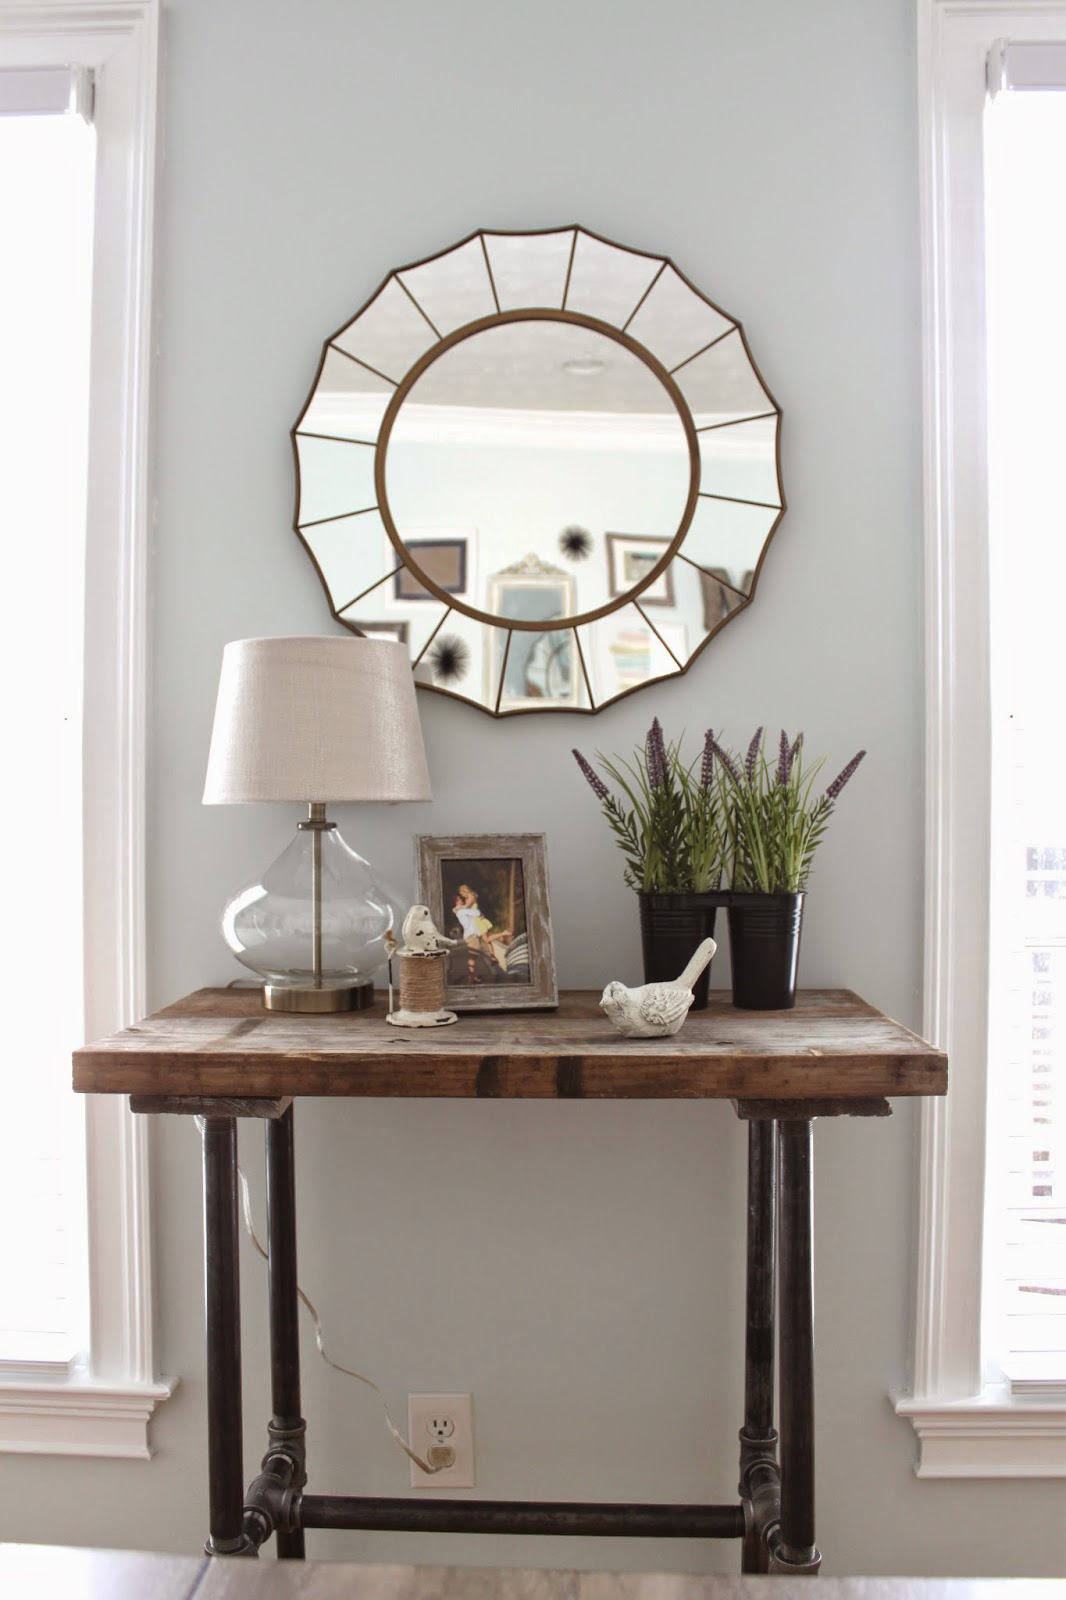 Lamp And Picture Frame Target Plant HomeGoods Birds Hobby Lobby